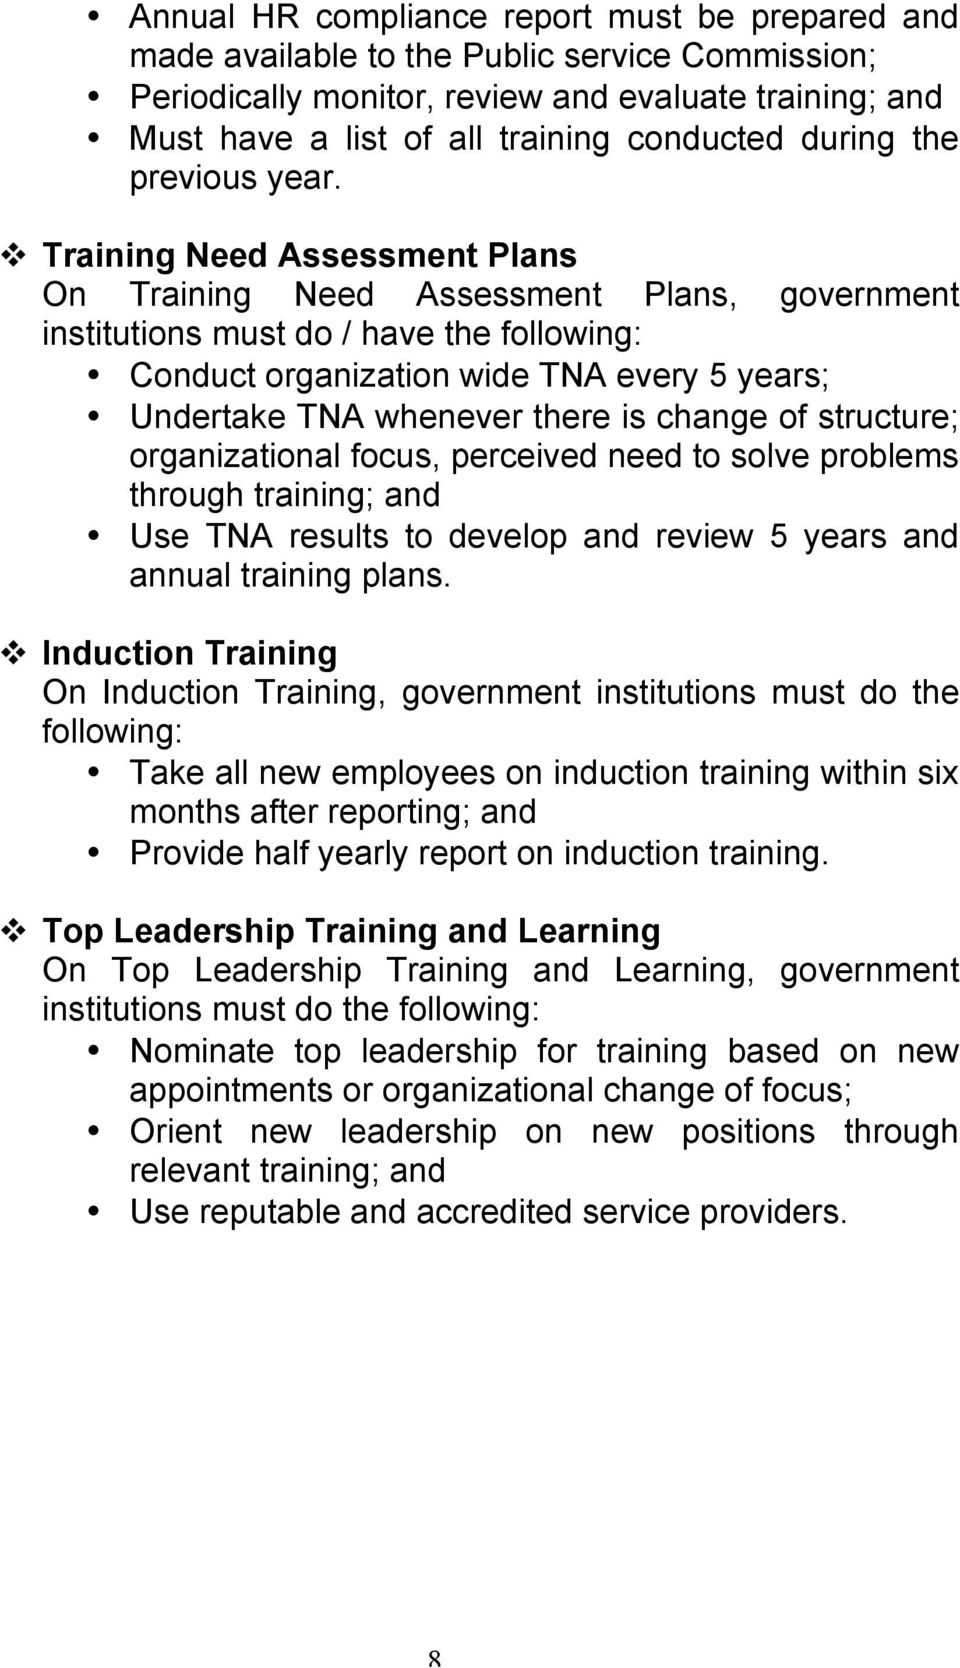 Training Need Assessment Plans On Training Need Assessment Plans, government institutions must do / have the following: Conduct organization wide TNA every 5 years; Undertake TNA whenever there is